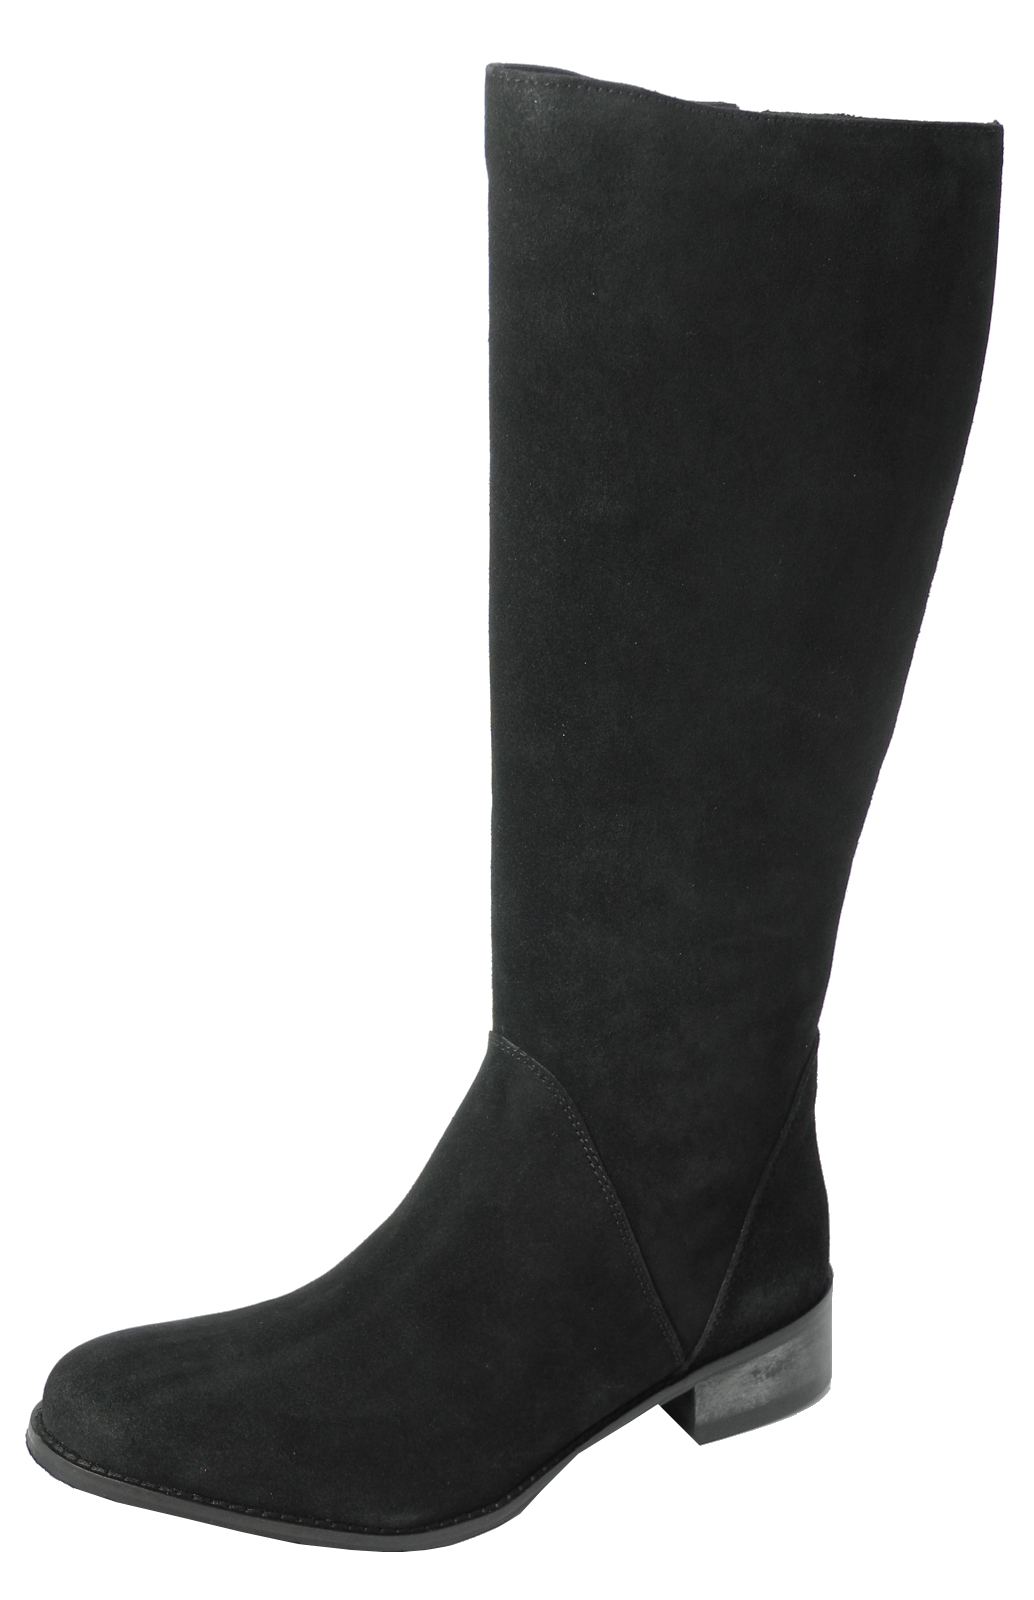 Shop womens knee high boots cheap sale online, you can buy black knee high boots, suede knee high boots, leather knee high boots and knee high heel boots for women and more at wholesale prices on senonsdownload-gv.cf FREE shipping available worldwide.